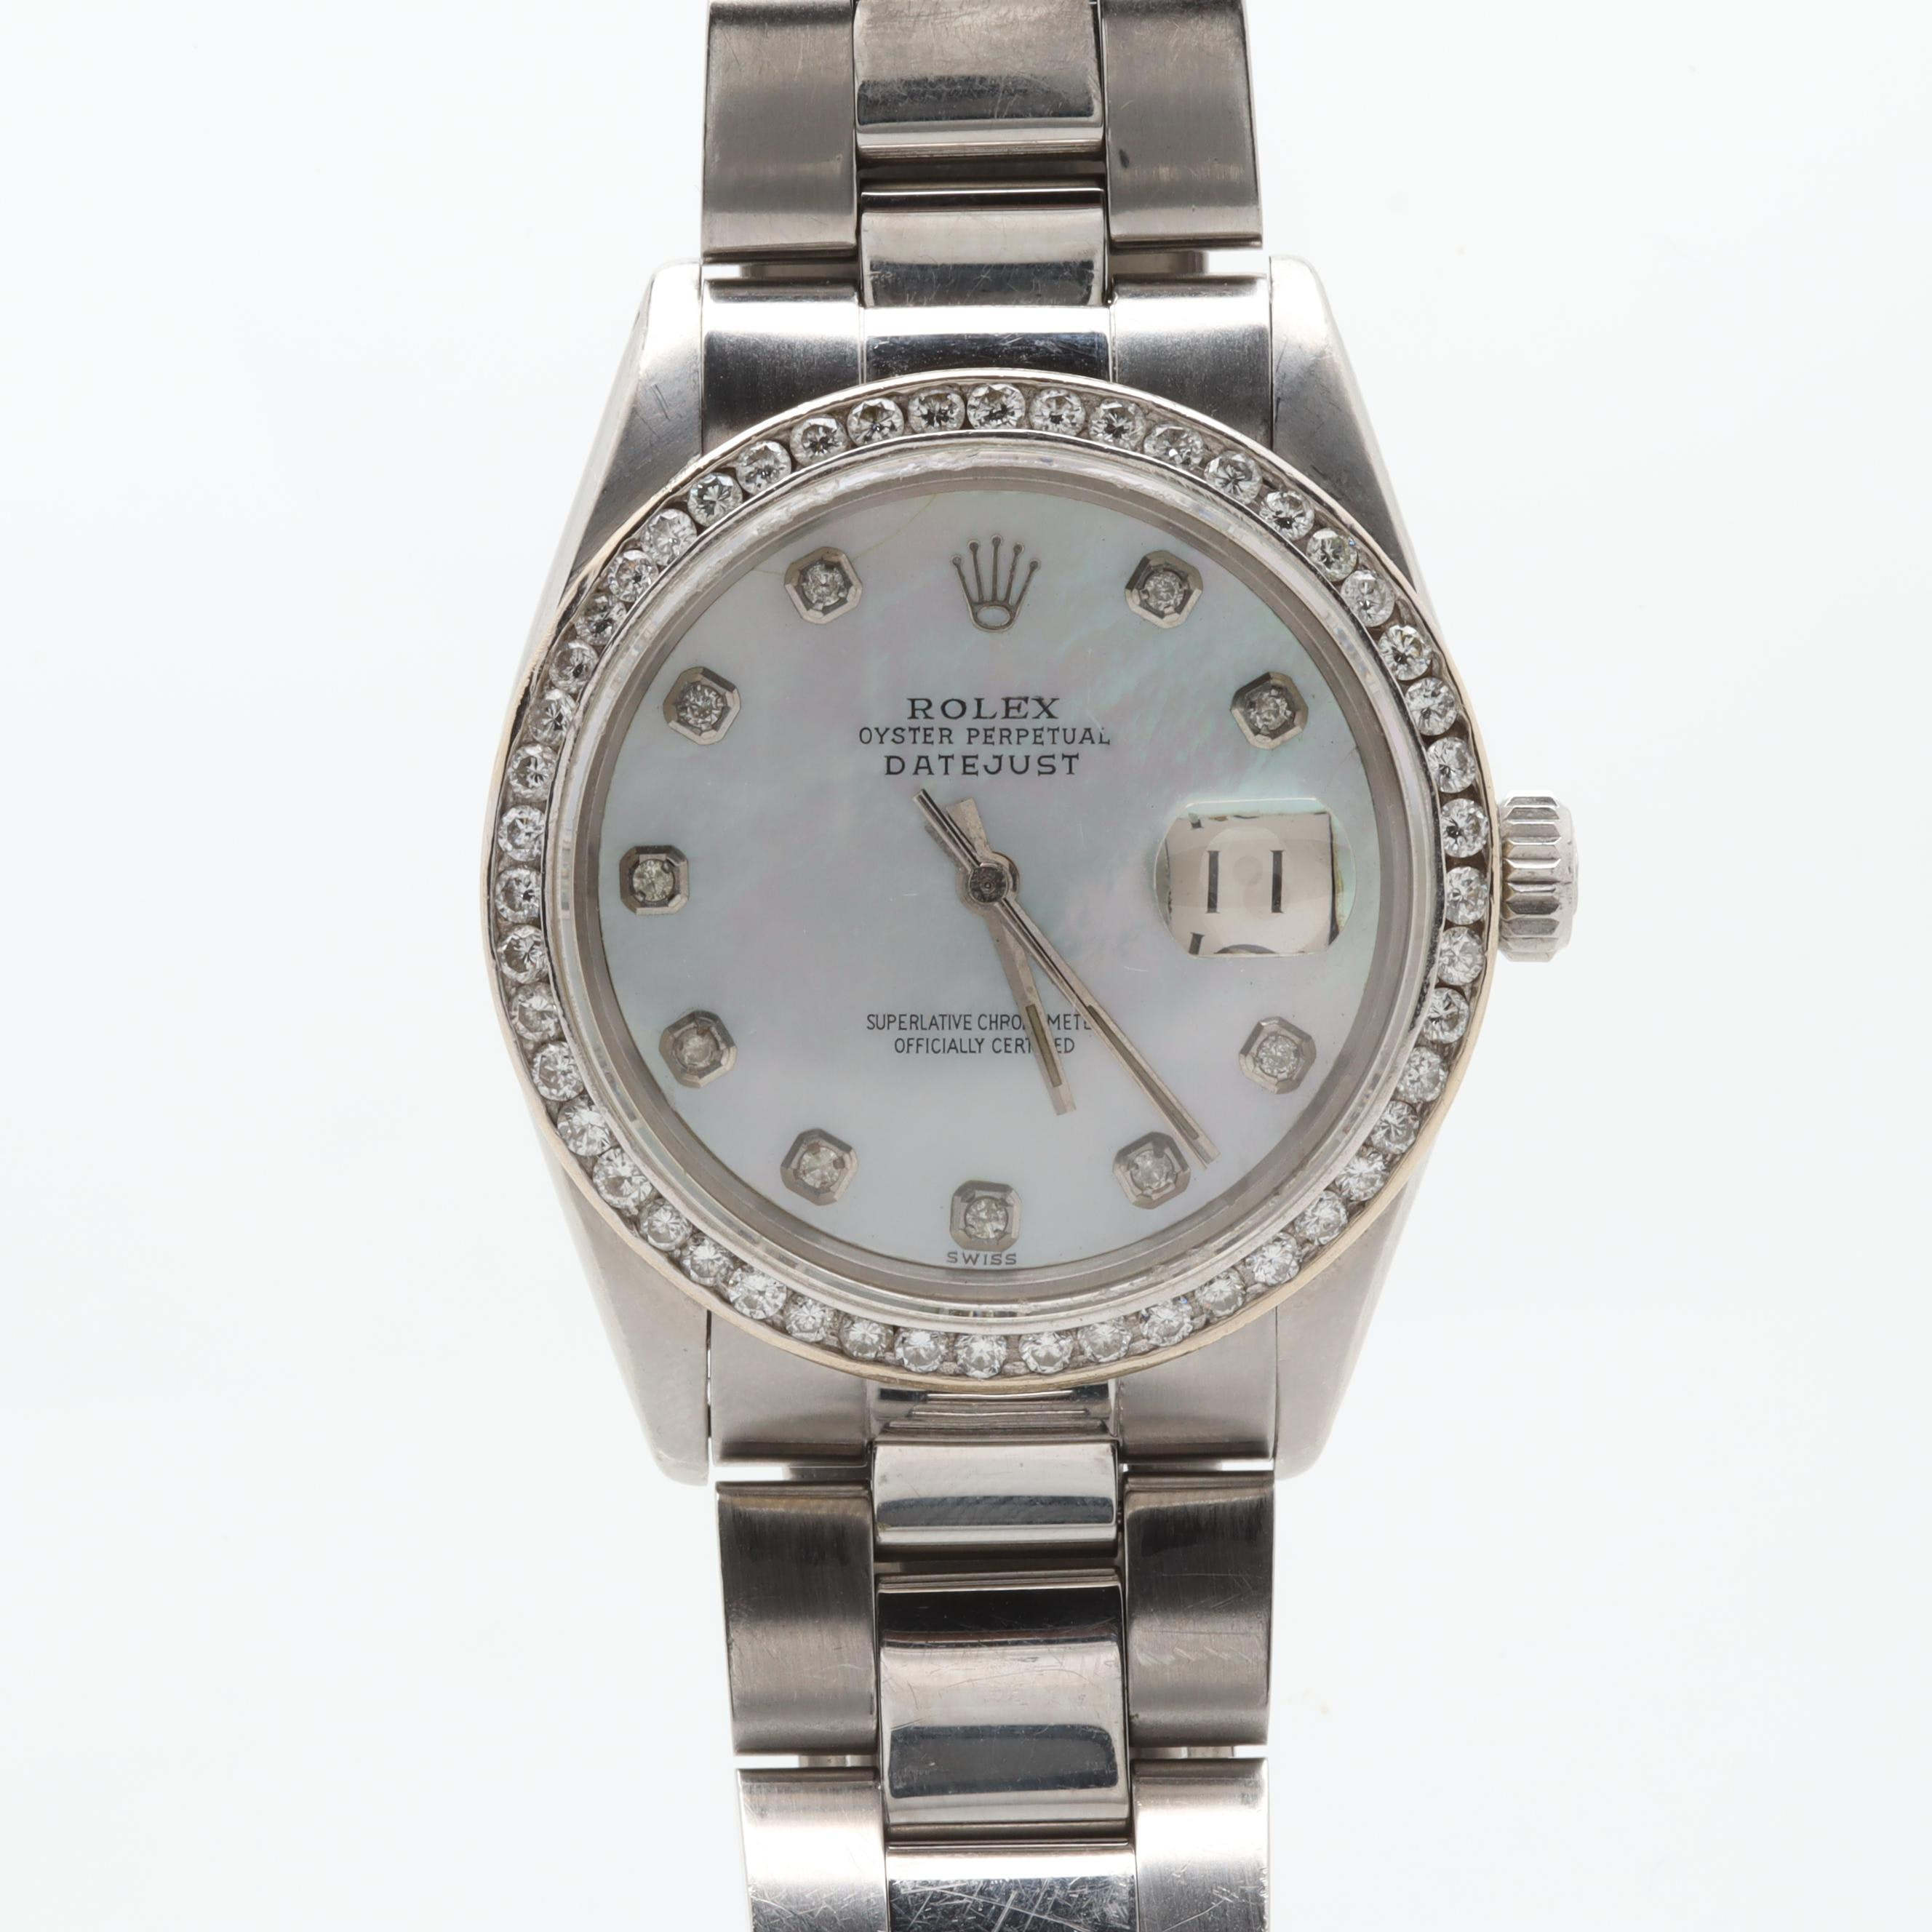 Rolex Datejust Stainless Steel and 1.62 CTW Diamond Wristwatch